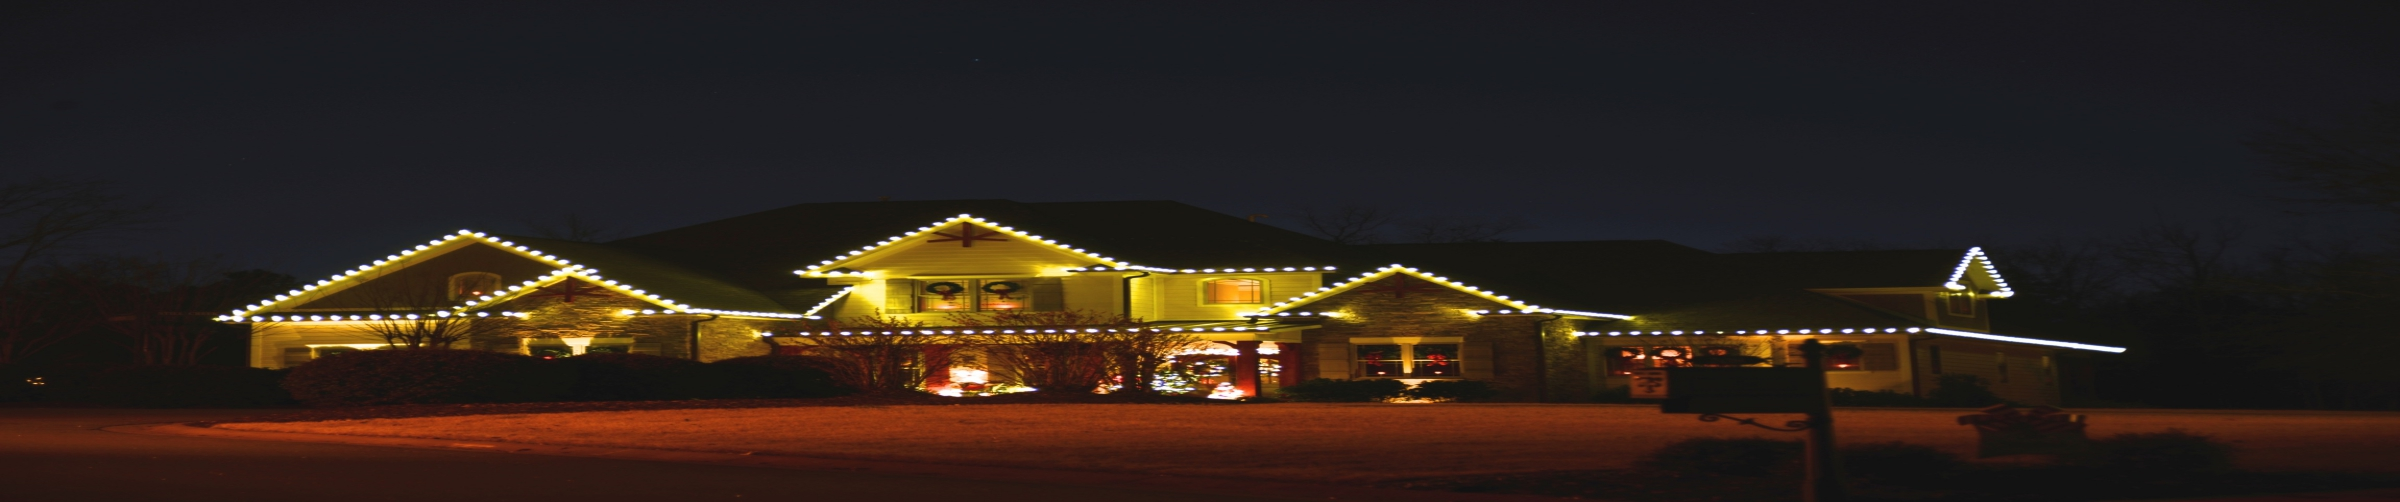 LED Christmas Lights and Other Ideas for More Energy Efficient Holiday Lighting - CleanandClearMN.com